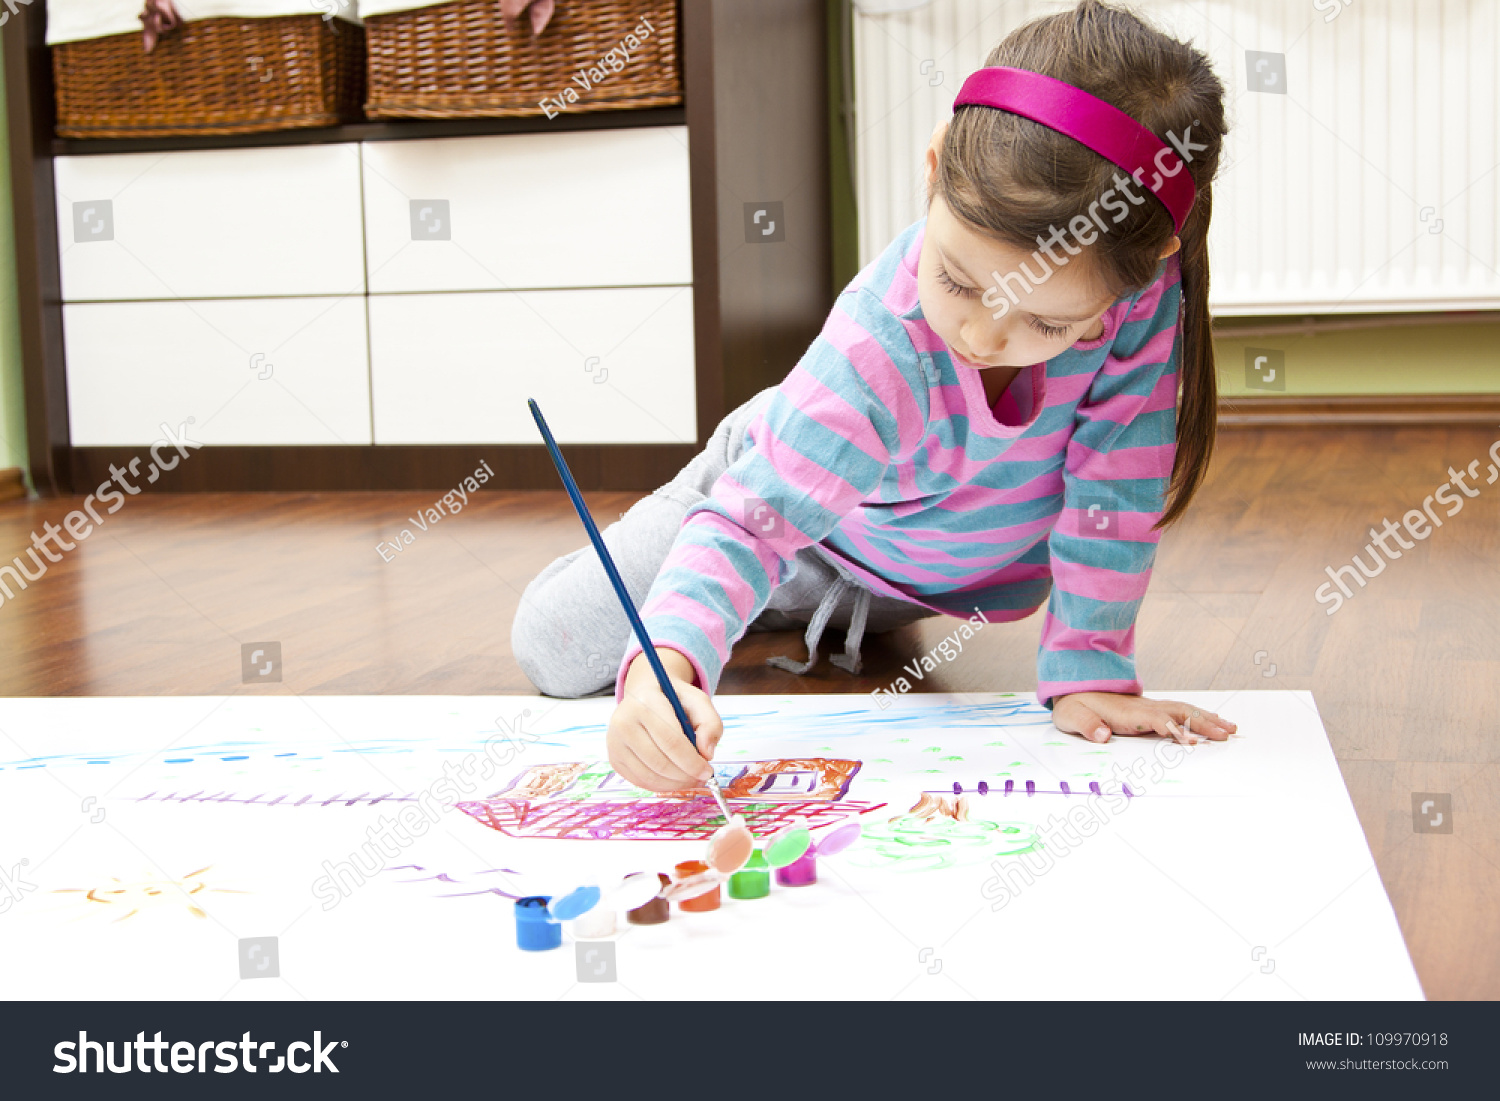 Drawing My Dream House Stock Photo 109970918 Shutterstock